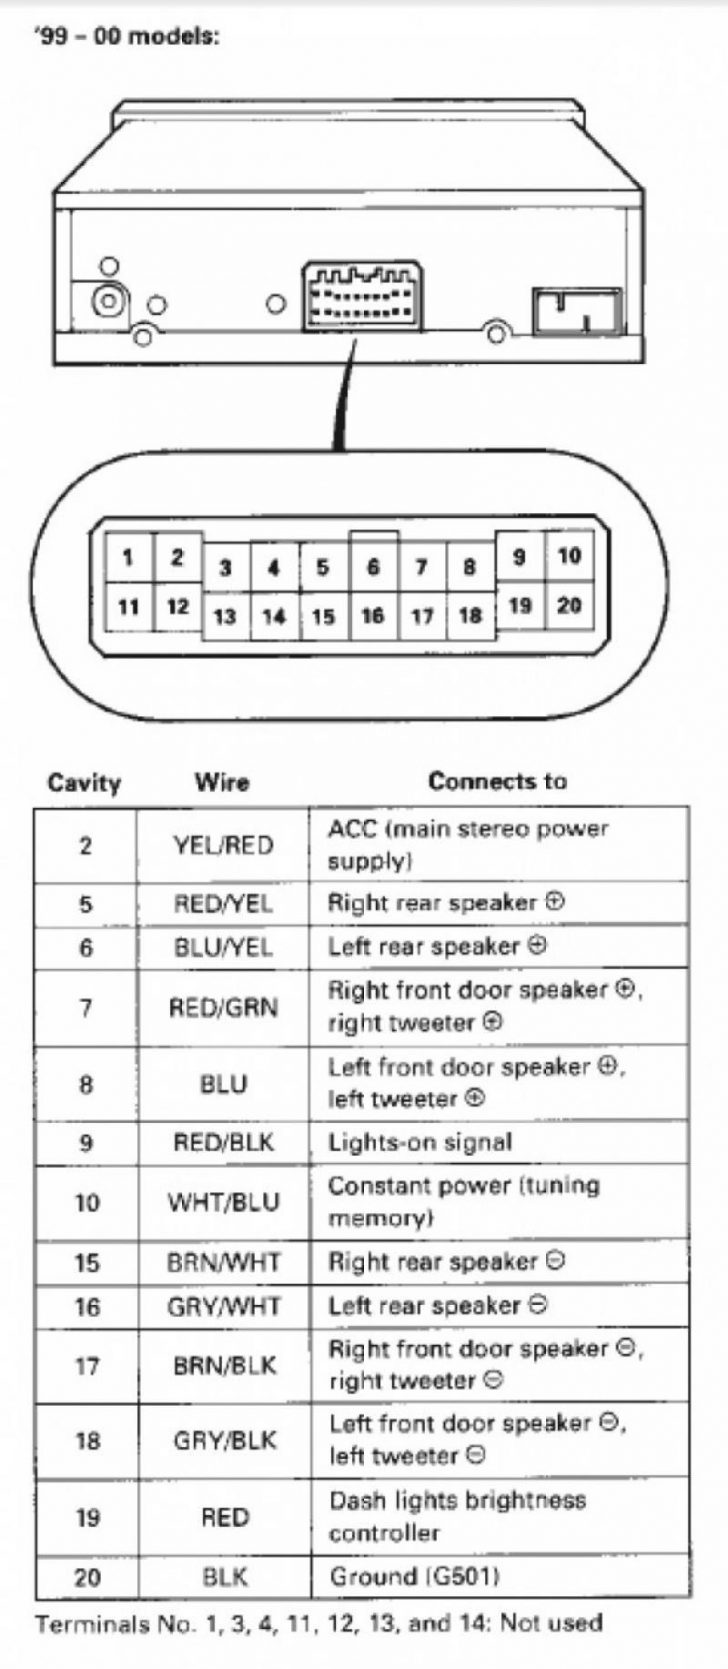 hight resolution of 2004 honda cr v stereo wiring schema diagram database honda crv 2005 stereo wiring diagram honda crv wiring diagram stereo